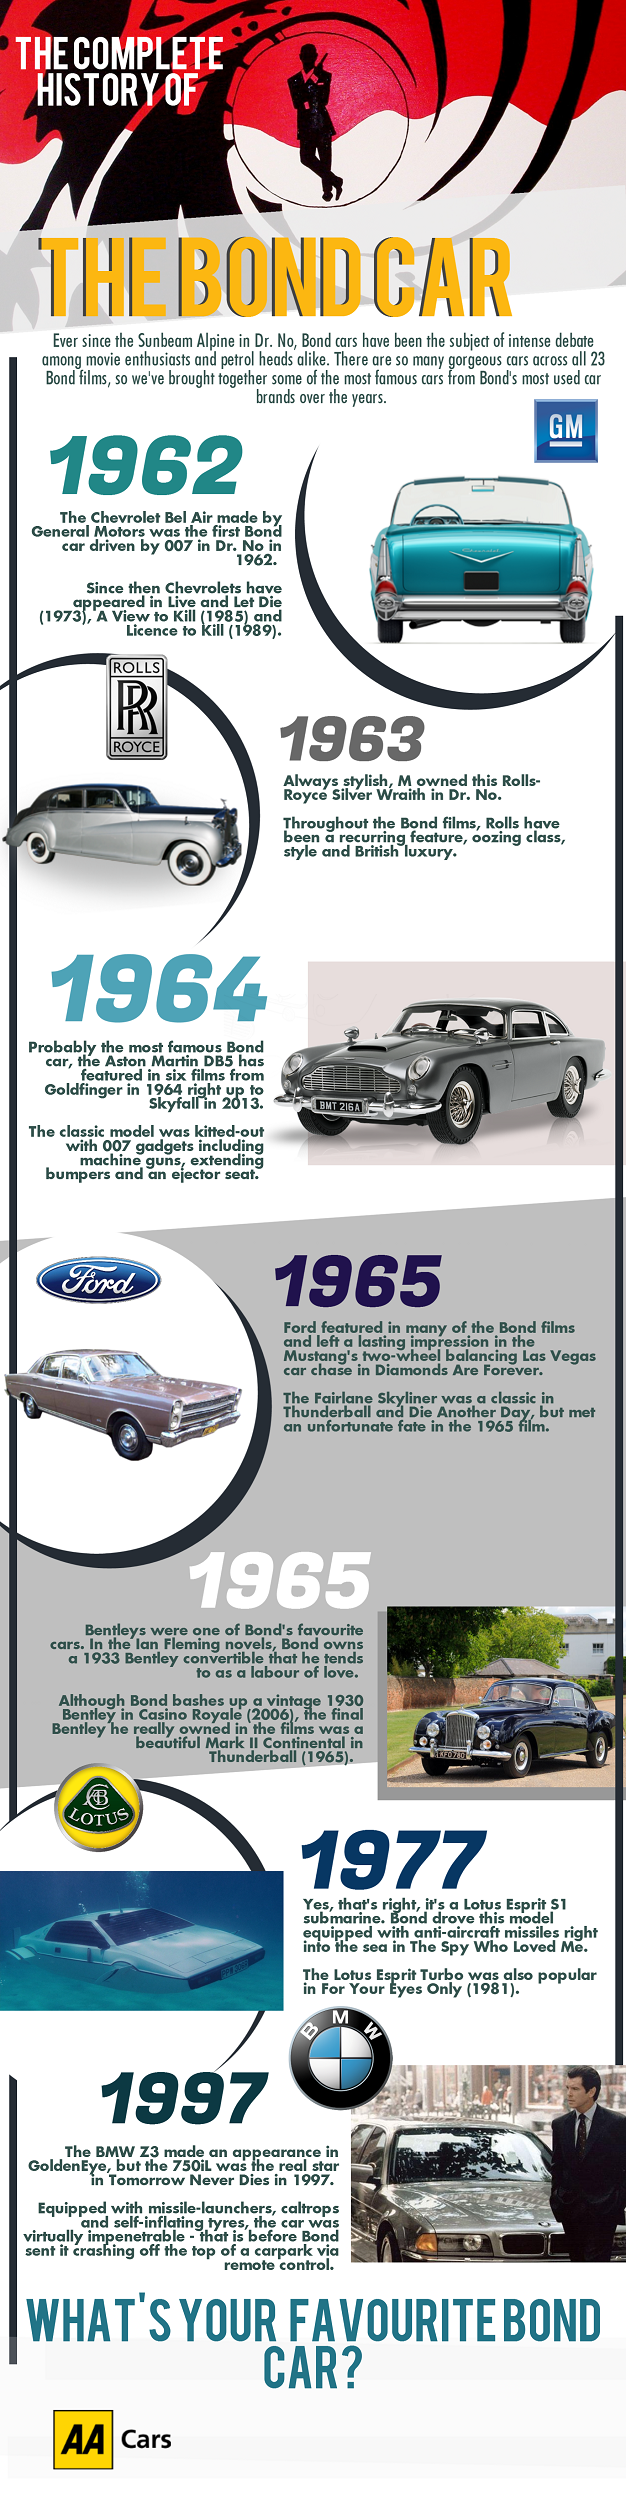 Complete History of James Bond Cars